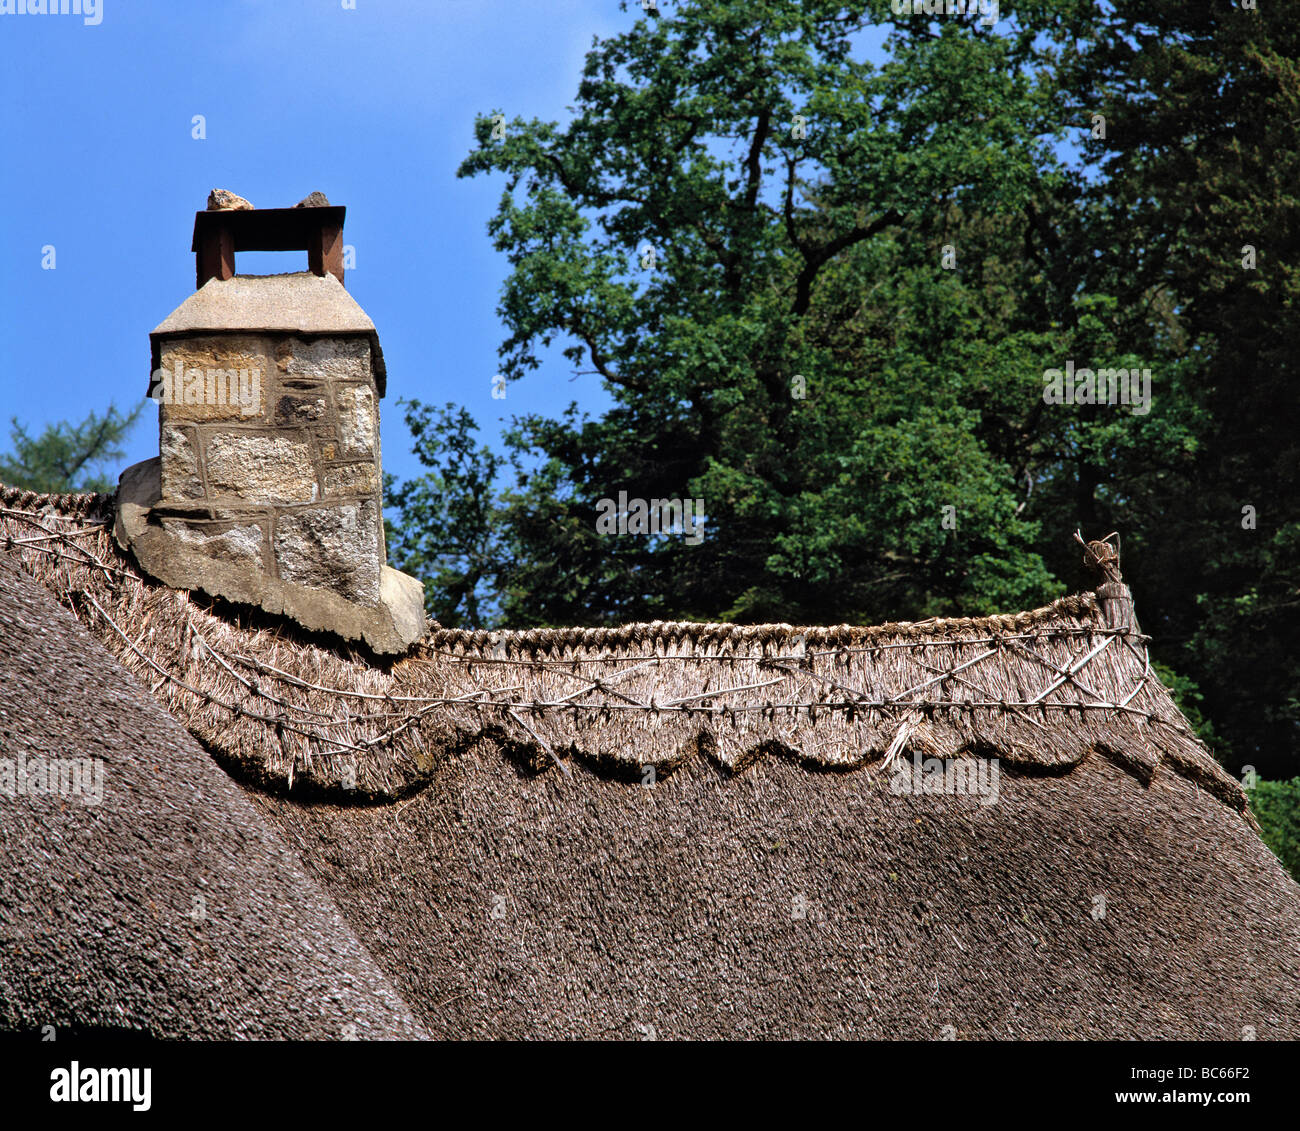 Thatched Roof Uk Stock Photos Amp Thatched Roof Uk Stock